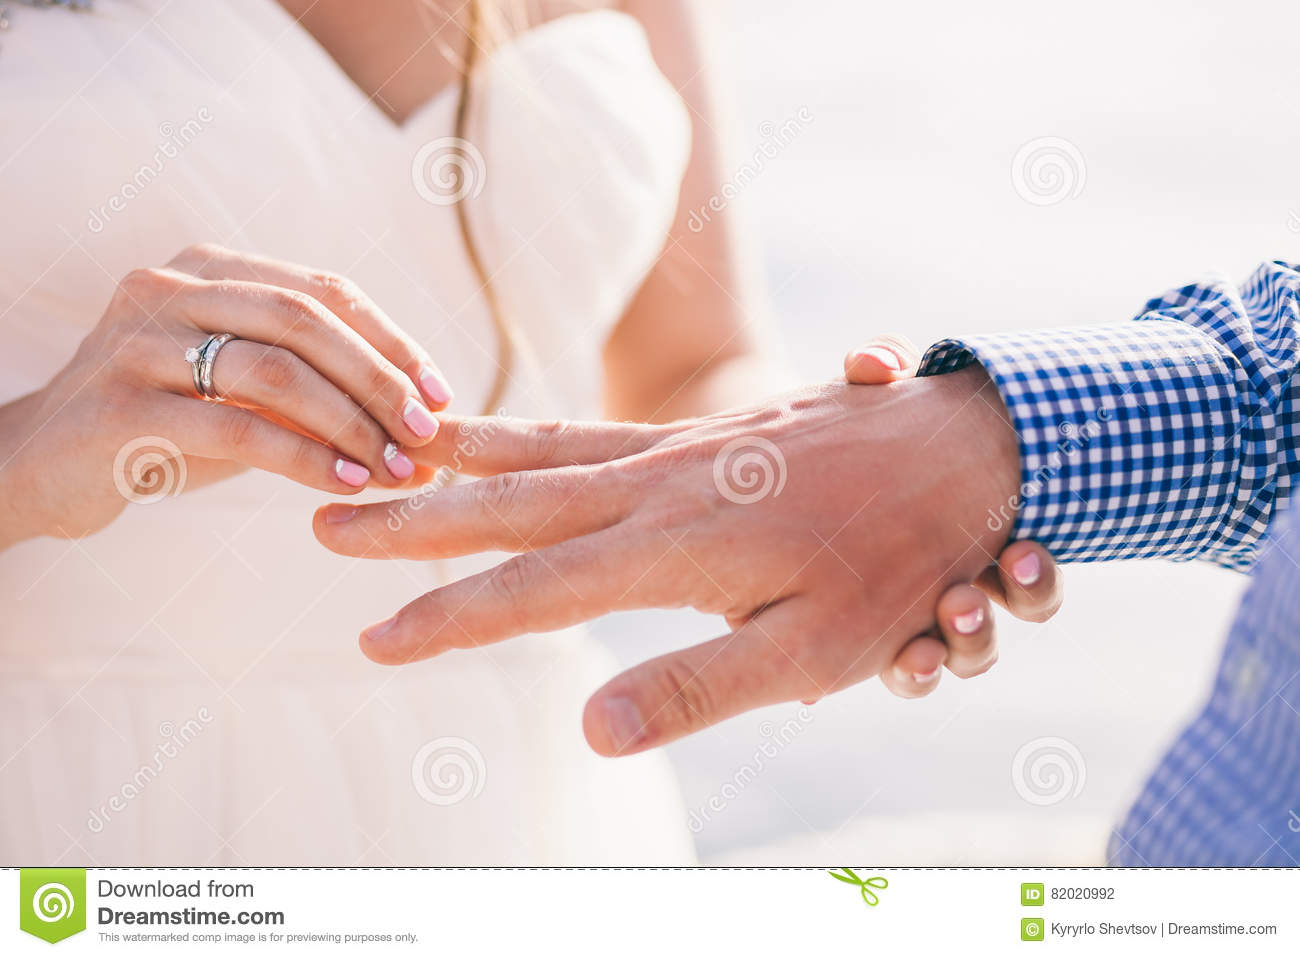 Wearing Wedding Ring Ceremony Stock Photo - Image of gold, dress ...